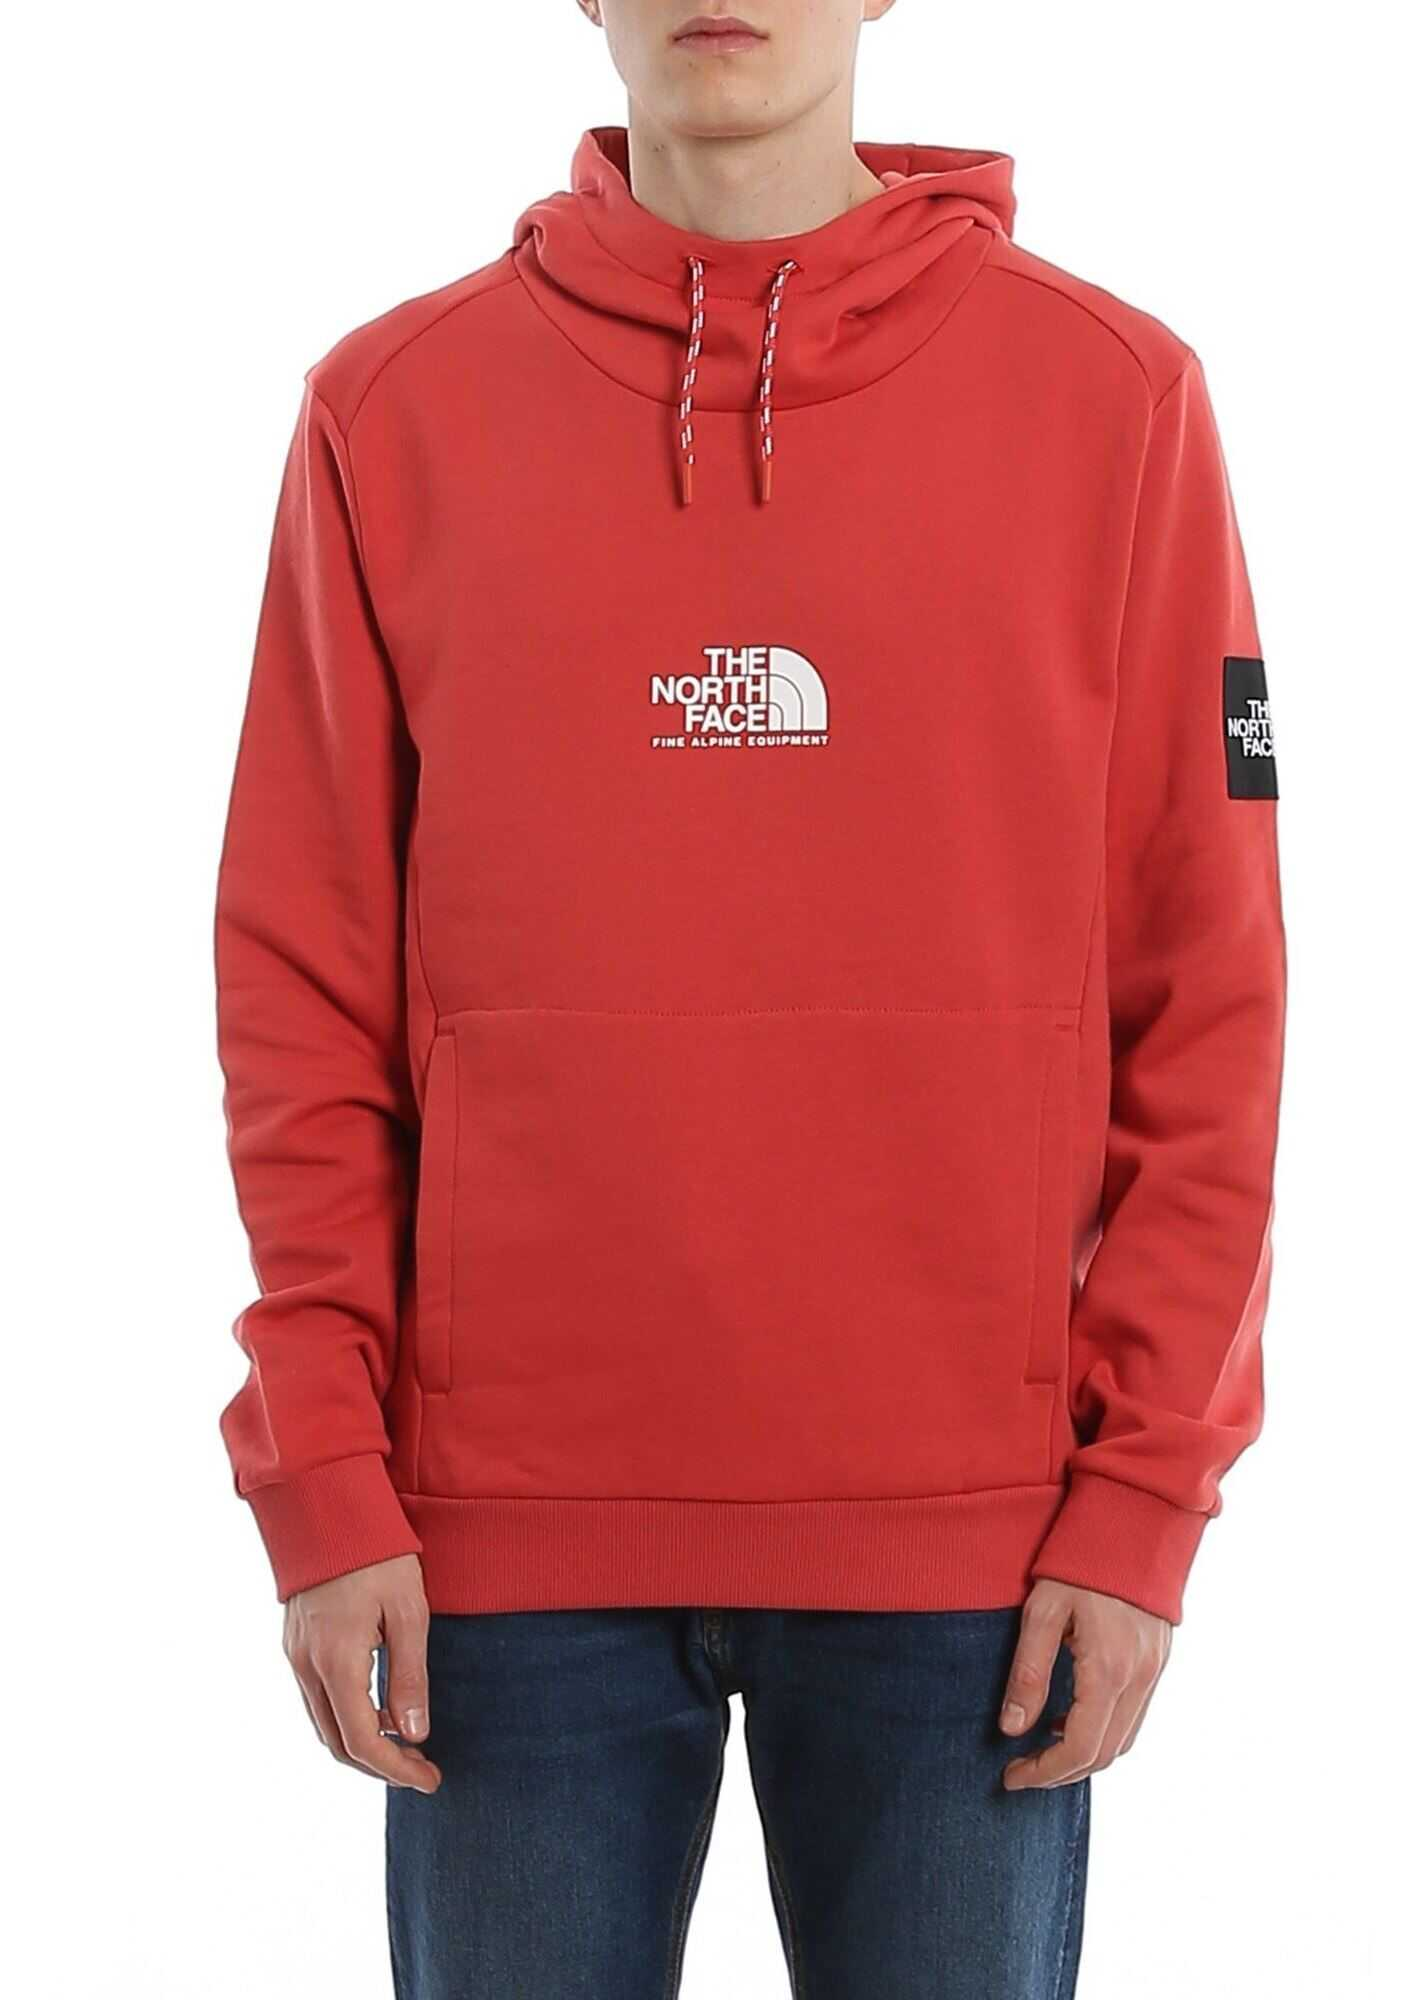 The North Face Fine Alpine Hoodie Red